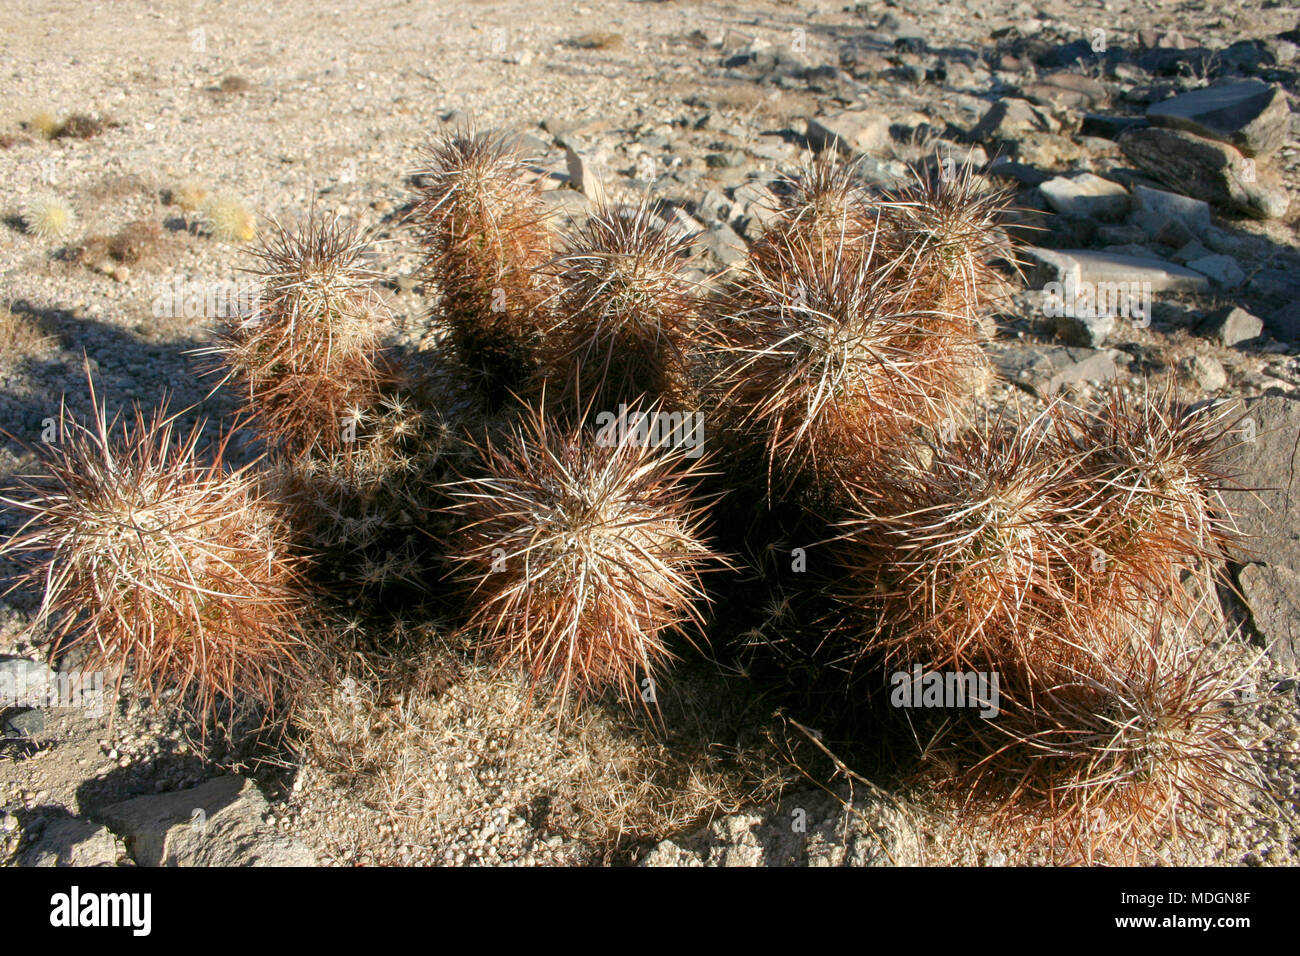 Group of cacti among stones Echinocereus engelmanii, Joshua Tree Landscape Yucca Brevifolia Mojave Desert Joshua Tree National Park California Stock Photo